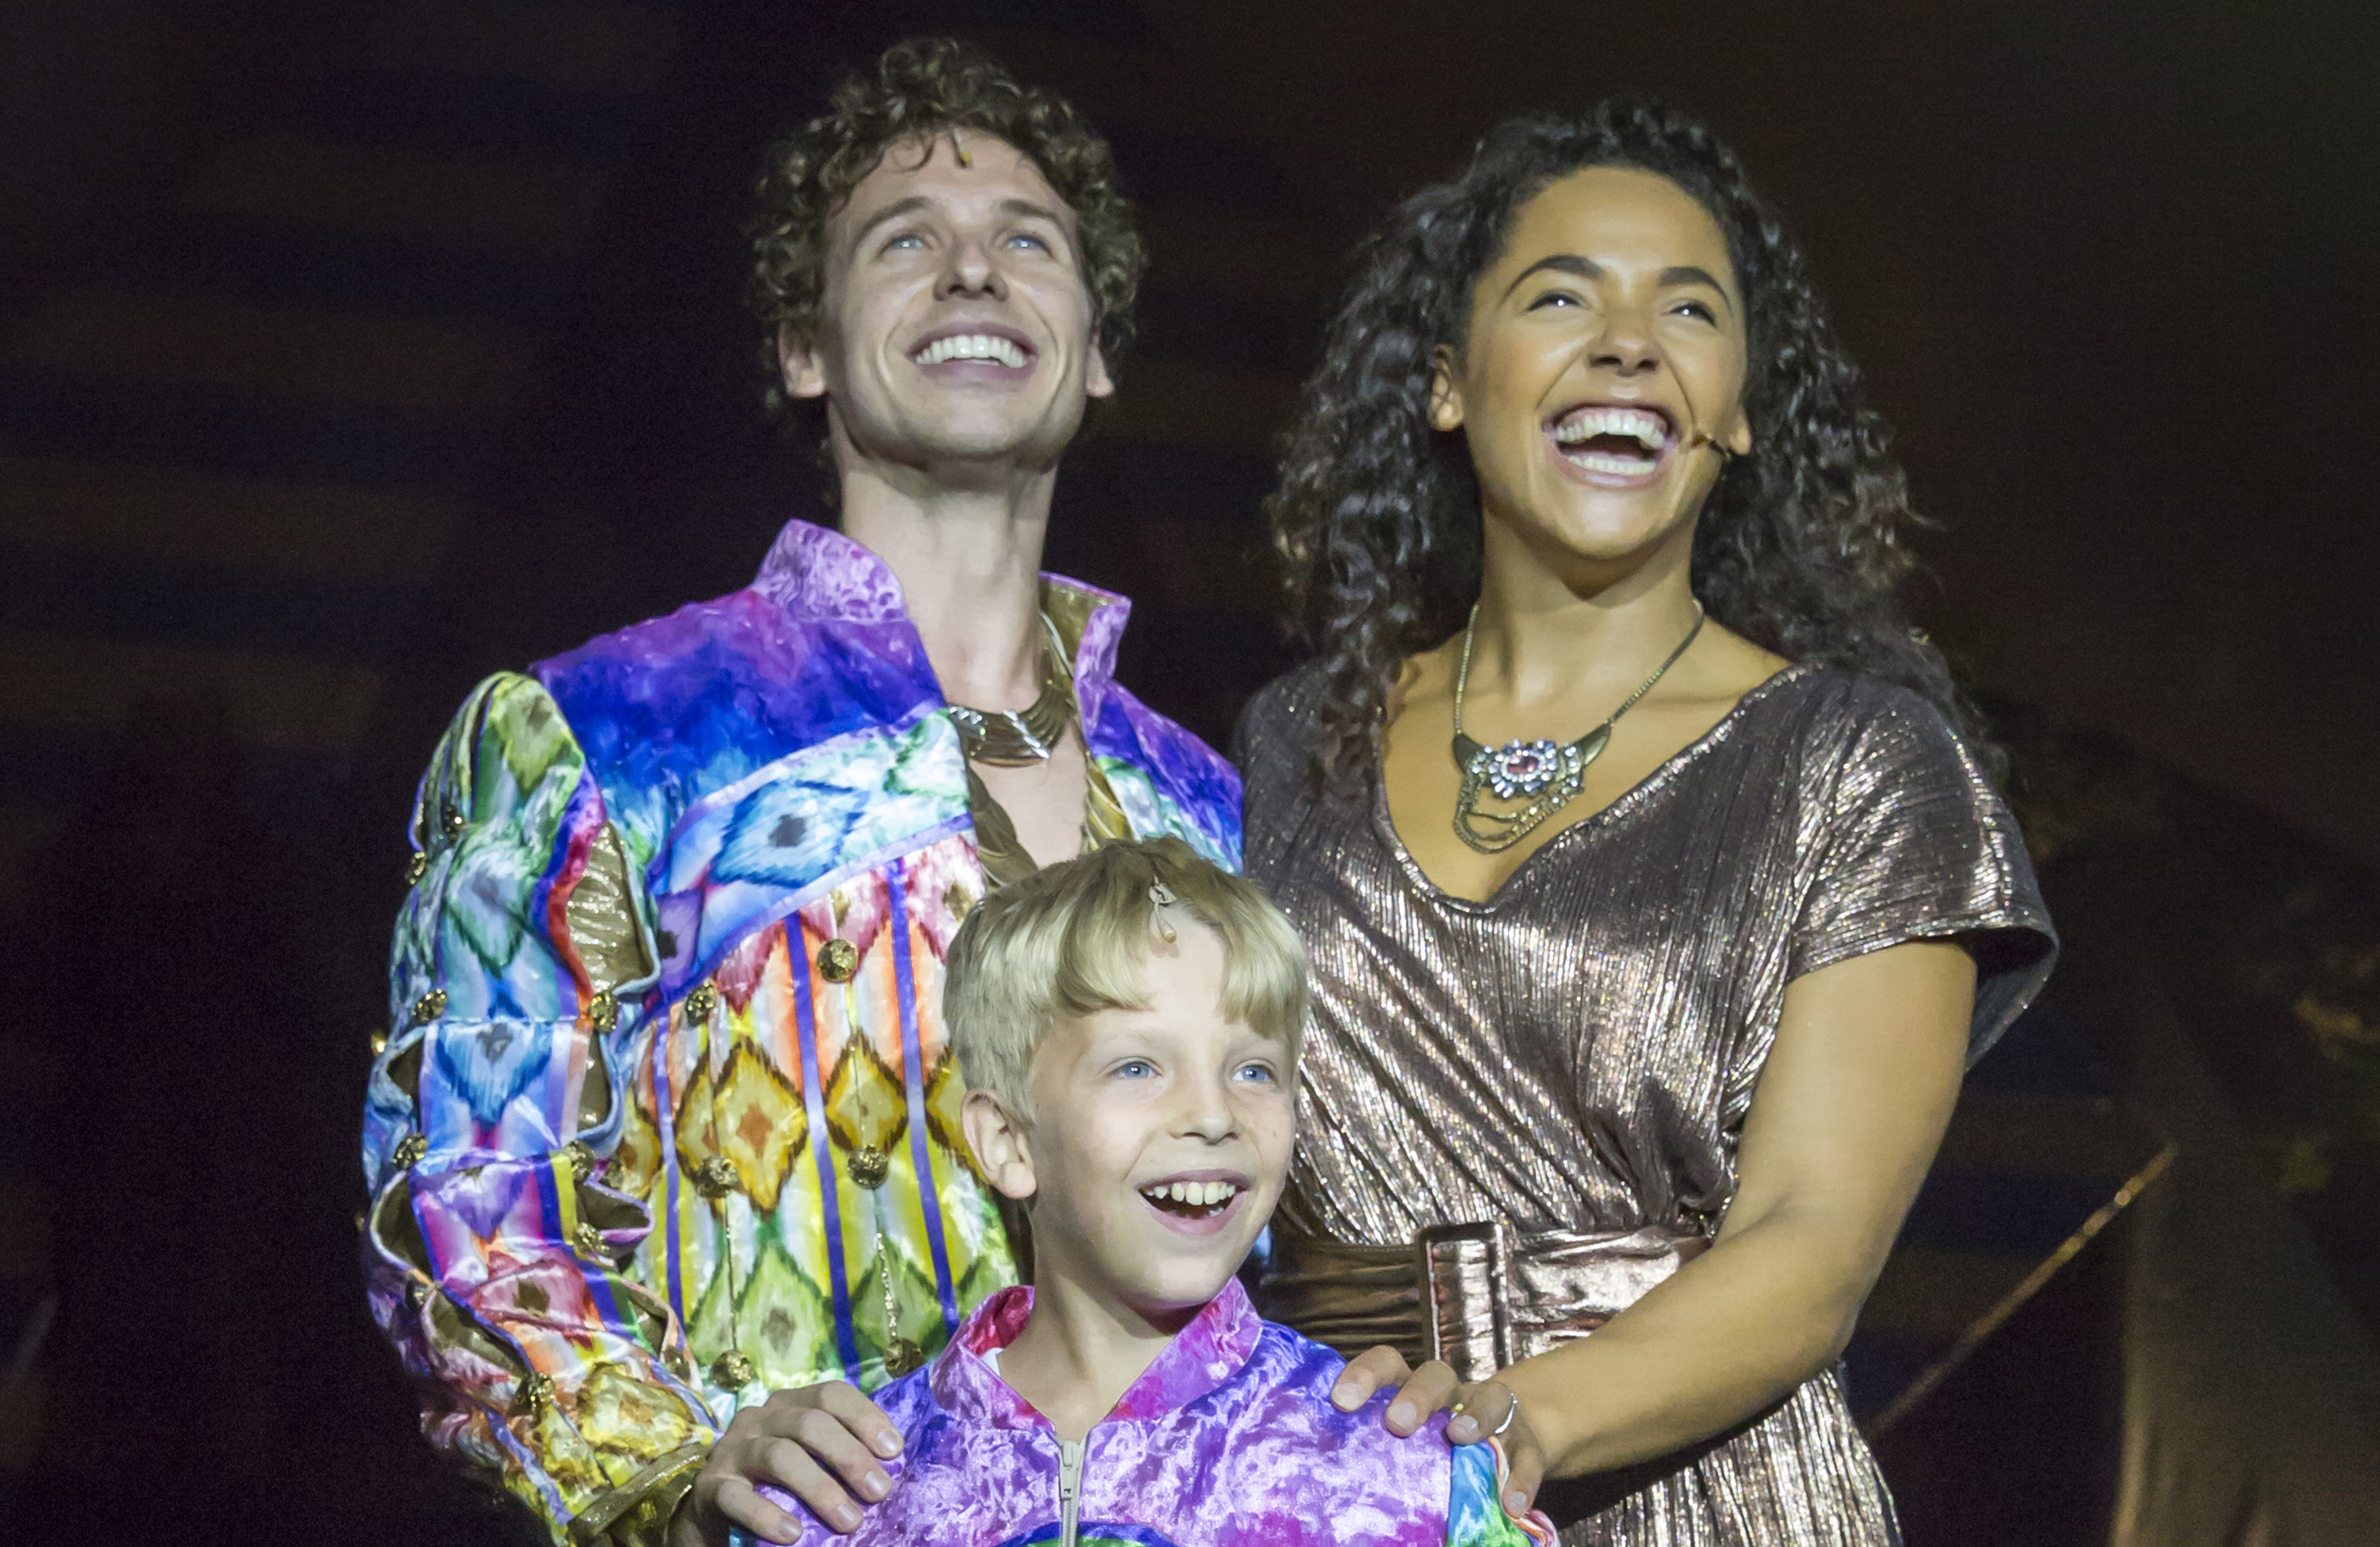 Matthew Jeans, Shanay Holmes Steward and George Moore in Joseph and the Amazing Technicolor Dreamcoat at Kilworth House